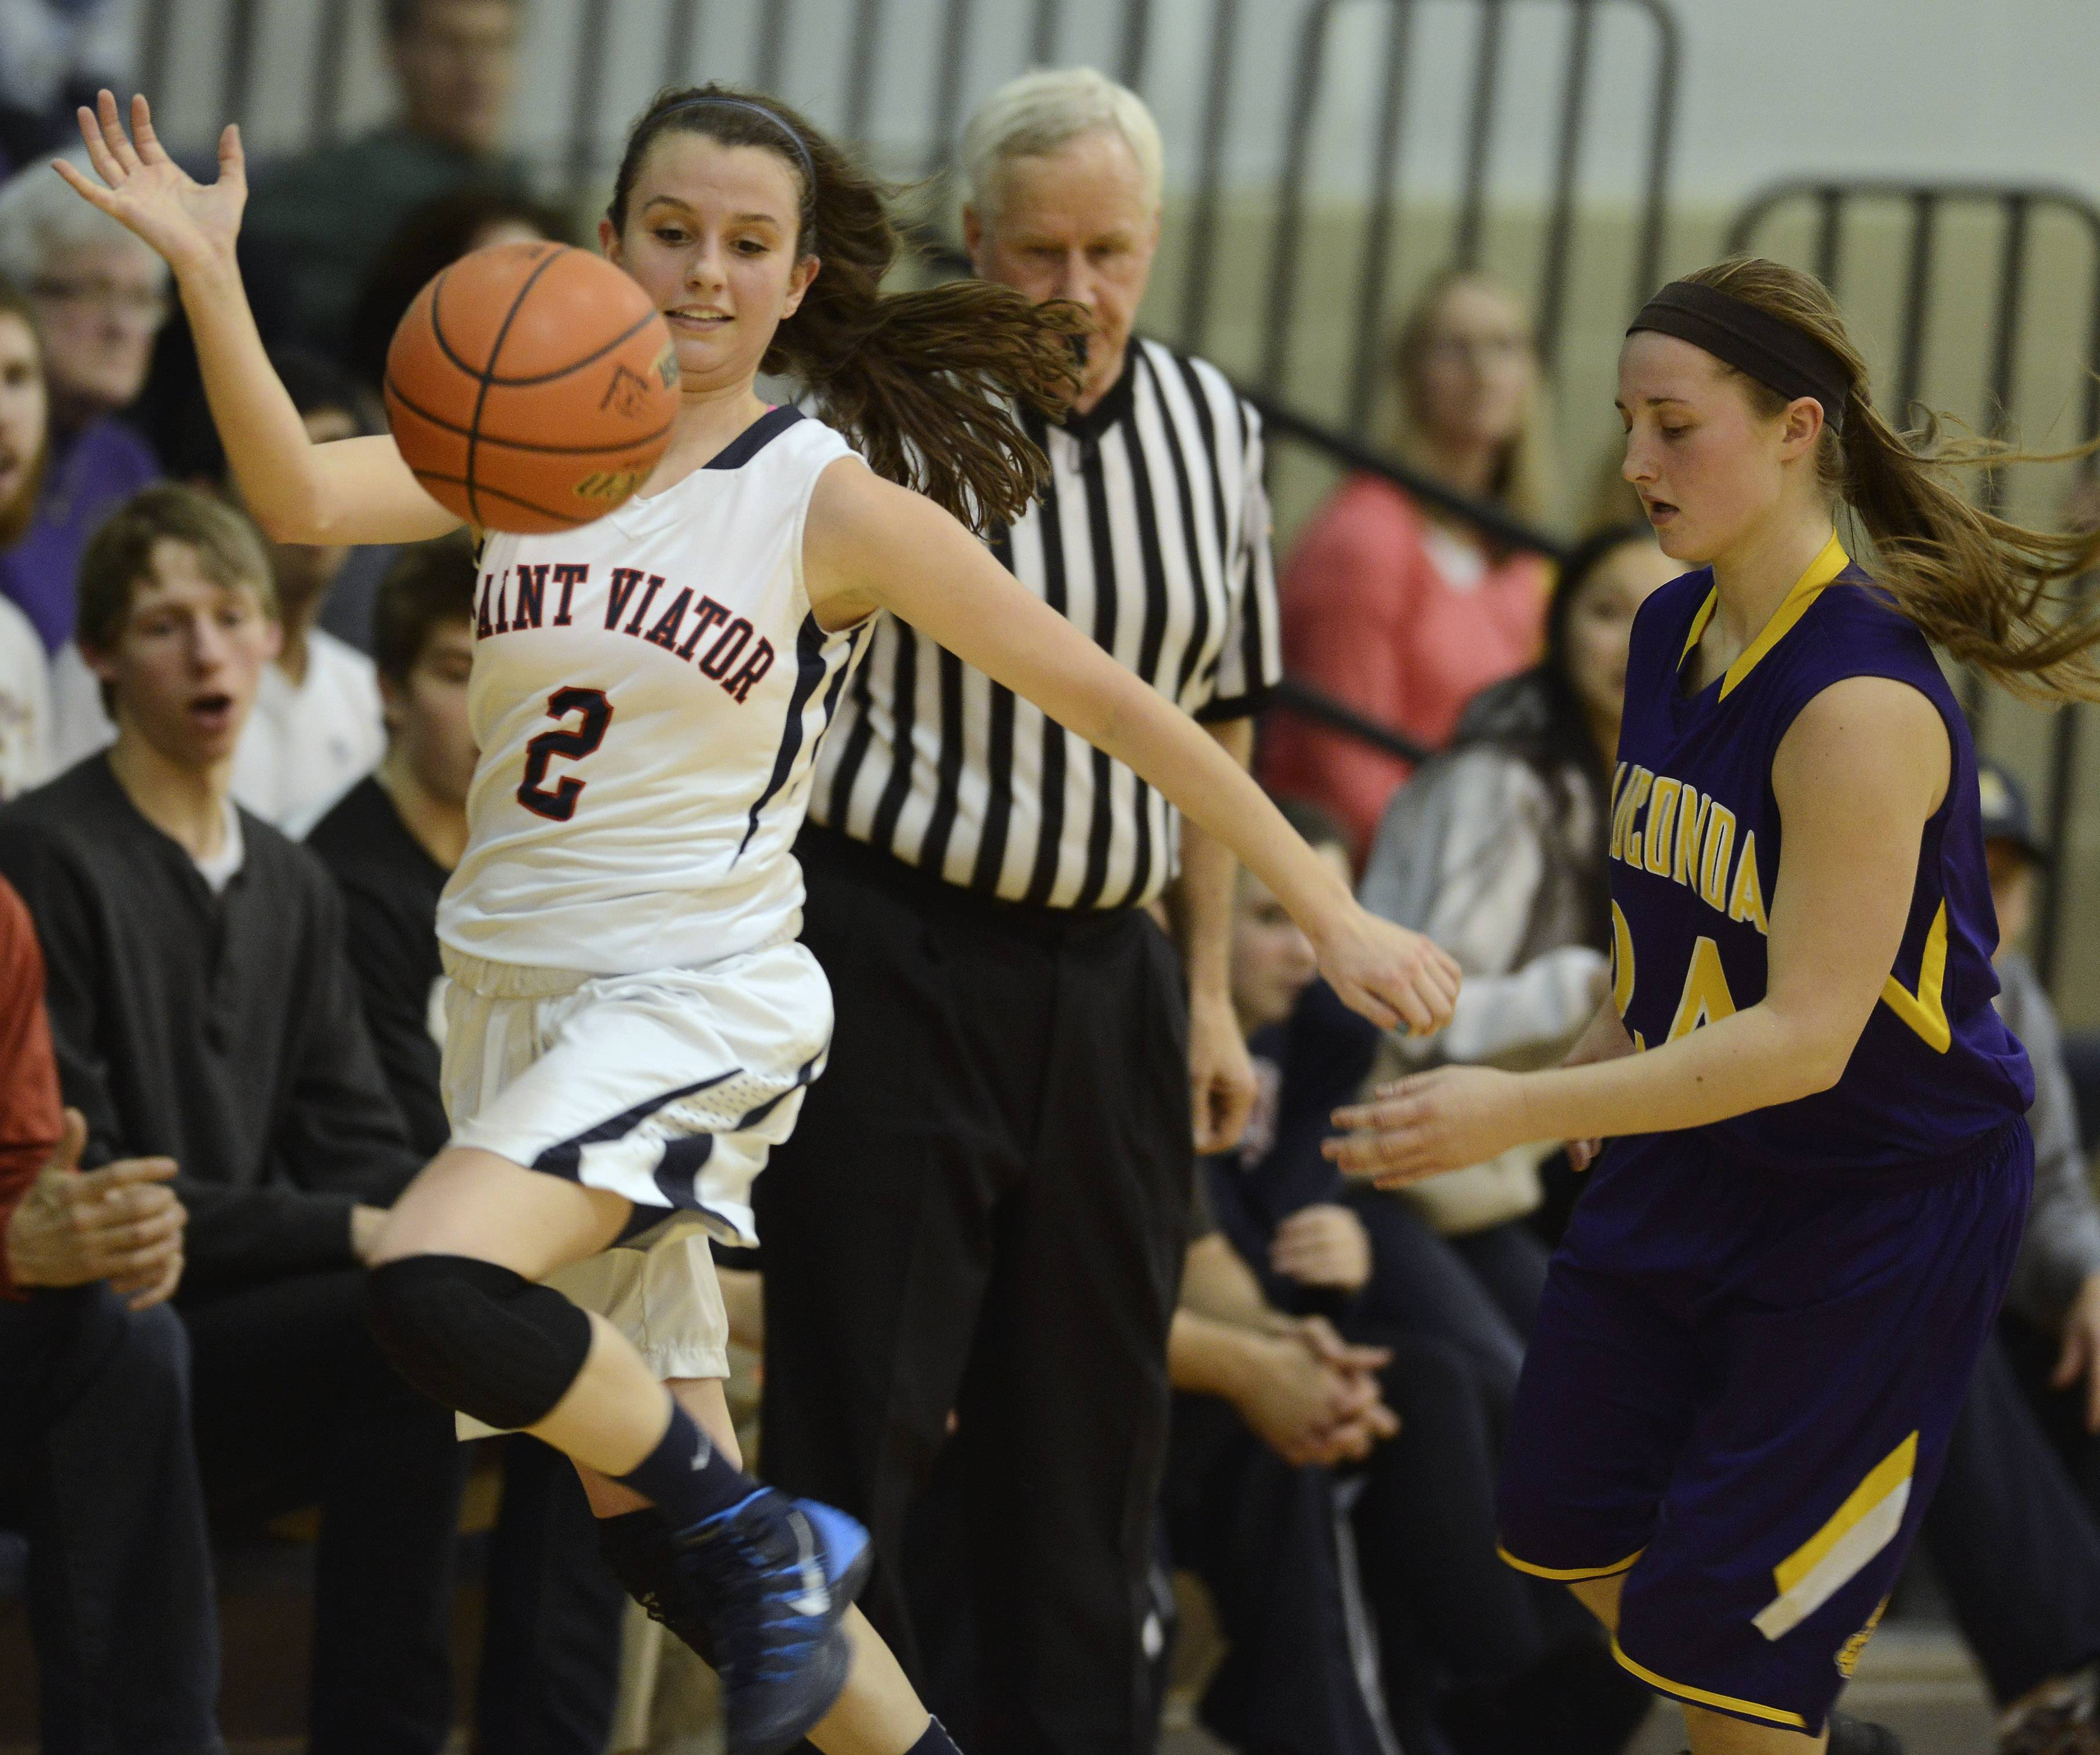 St. Viator's Susie Moynihan, left, tries to stay in bounds while attempting to steal the ball from Wauconda's Anna Wisniewski during Wednesday's game in Arlington Heights.